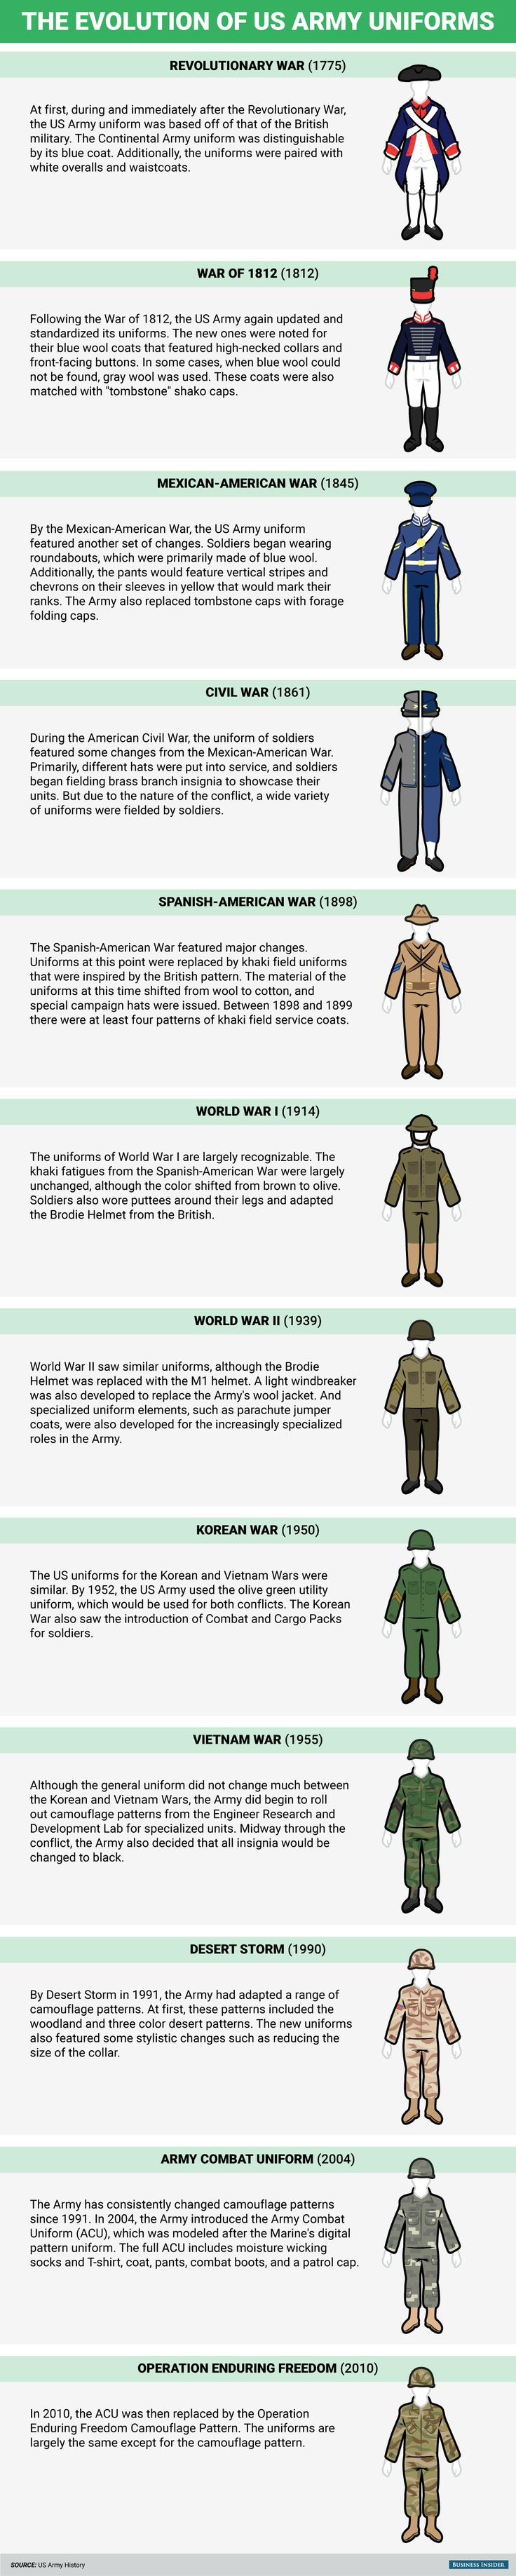 How US Army uniforms changed over the 241 years since independence